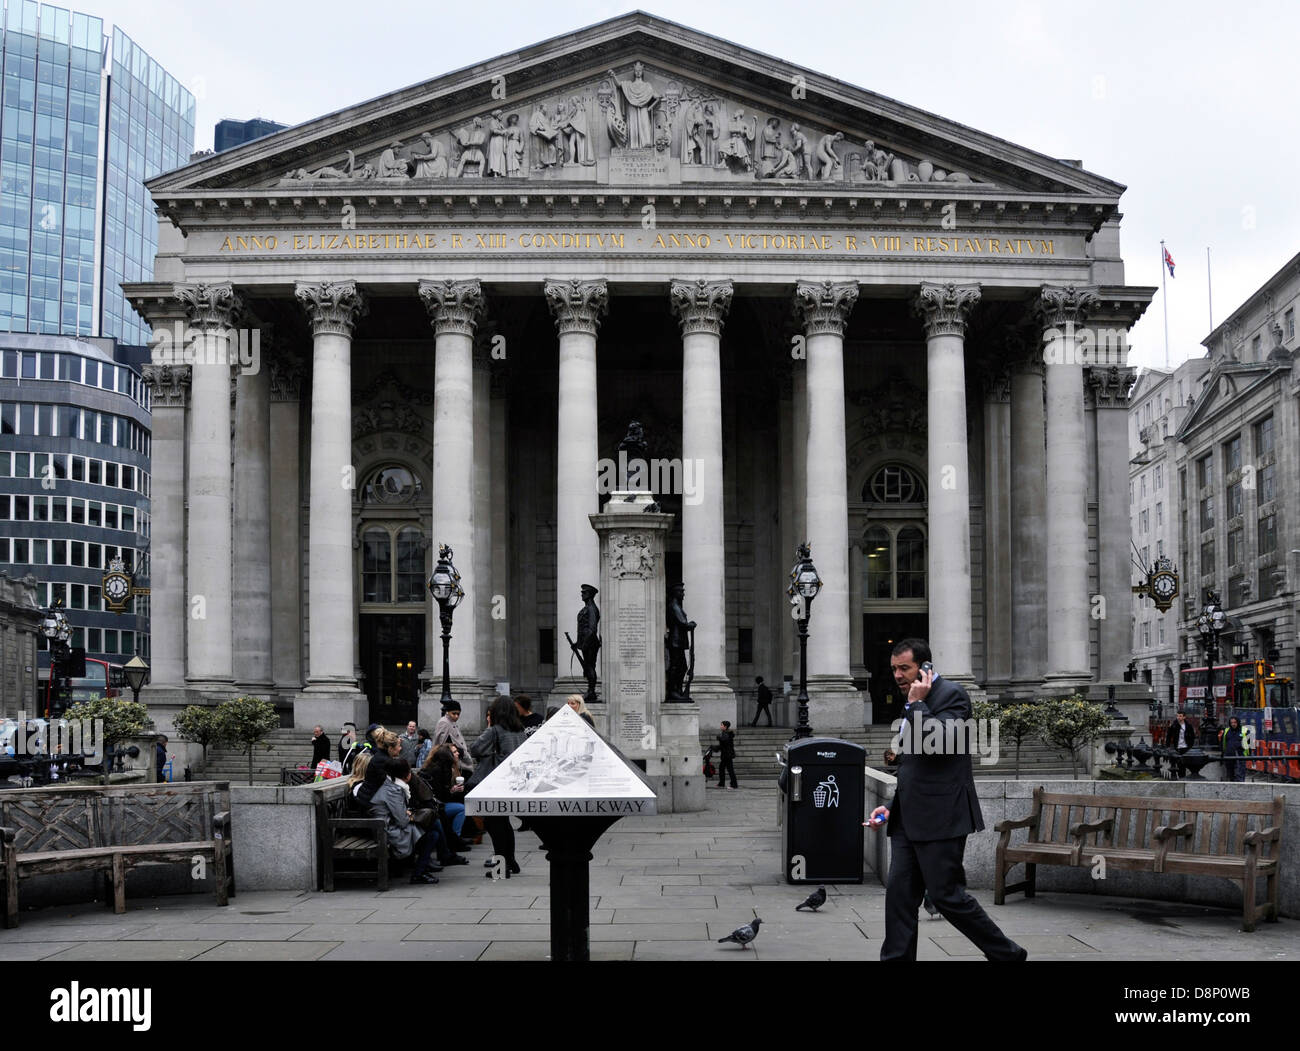 The Royal Exchange in London, with people sitting outside and a businessman passing by on his mobile phone. England, - Stock Image